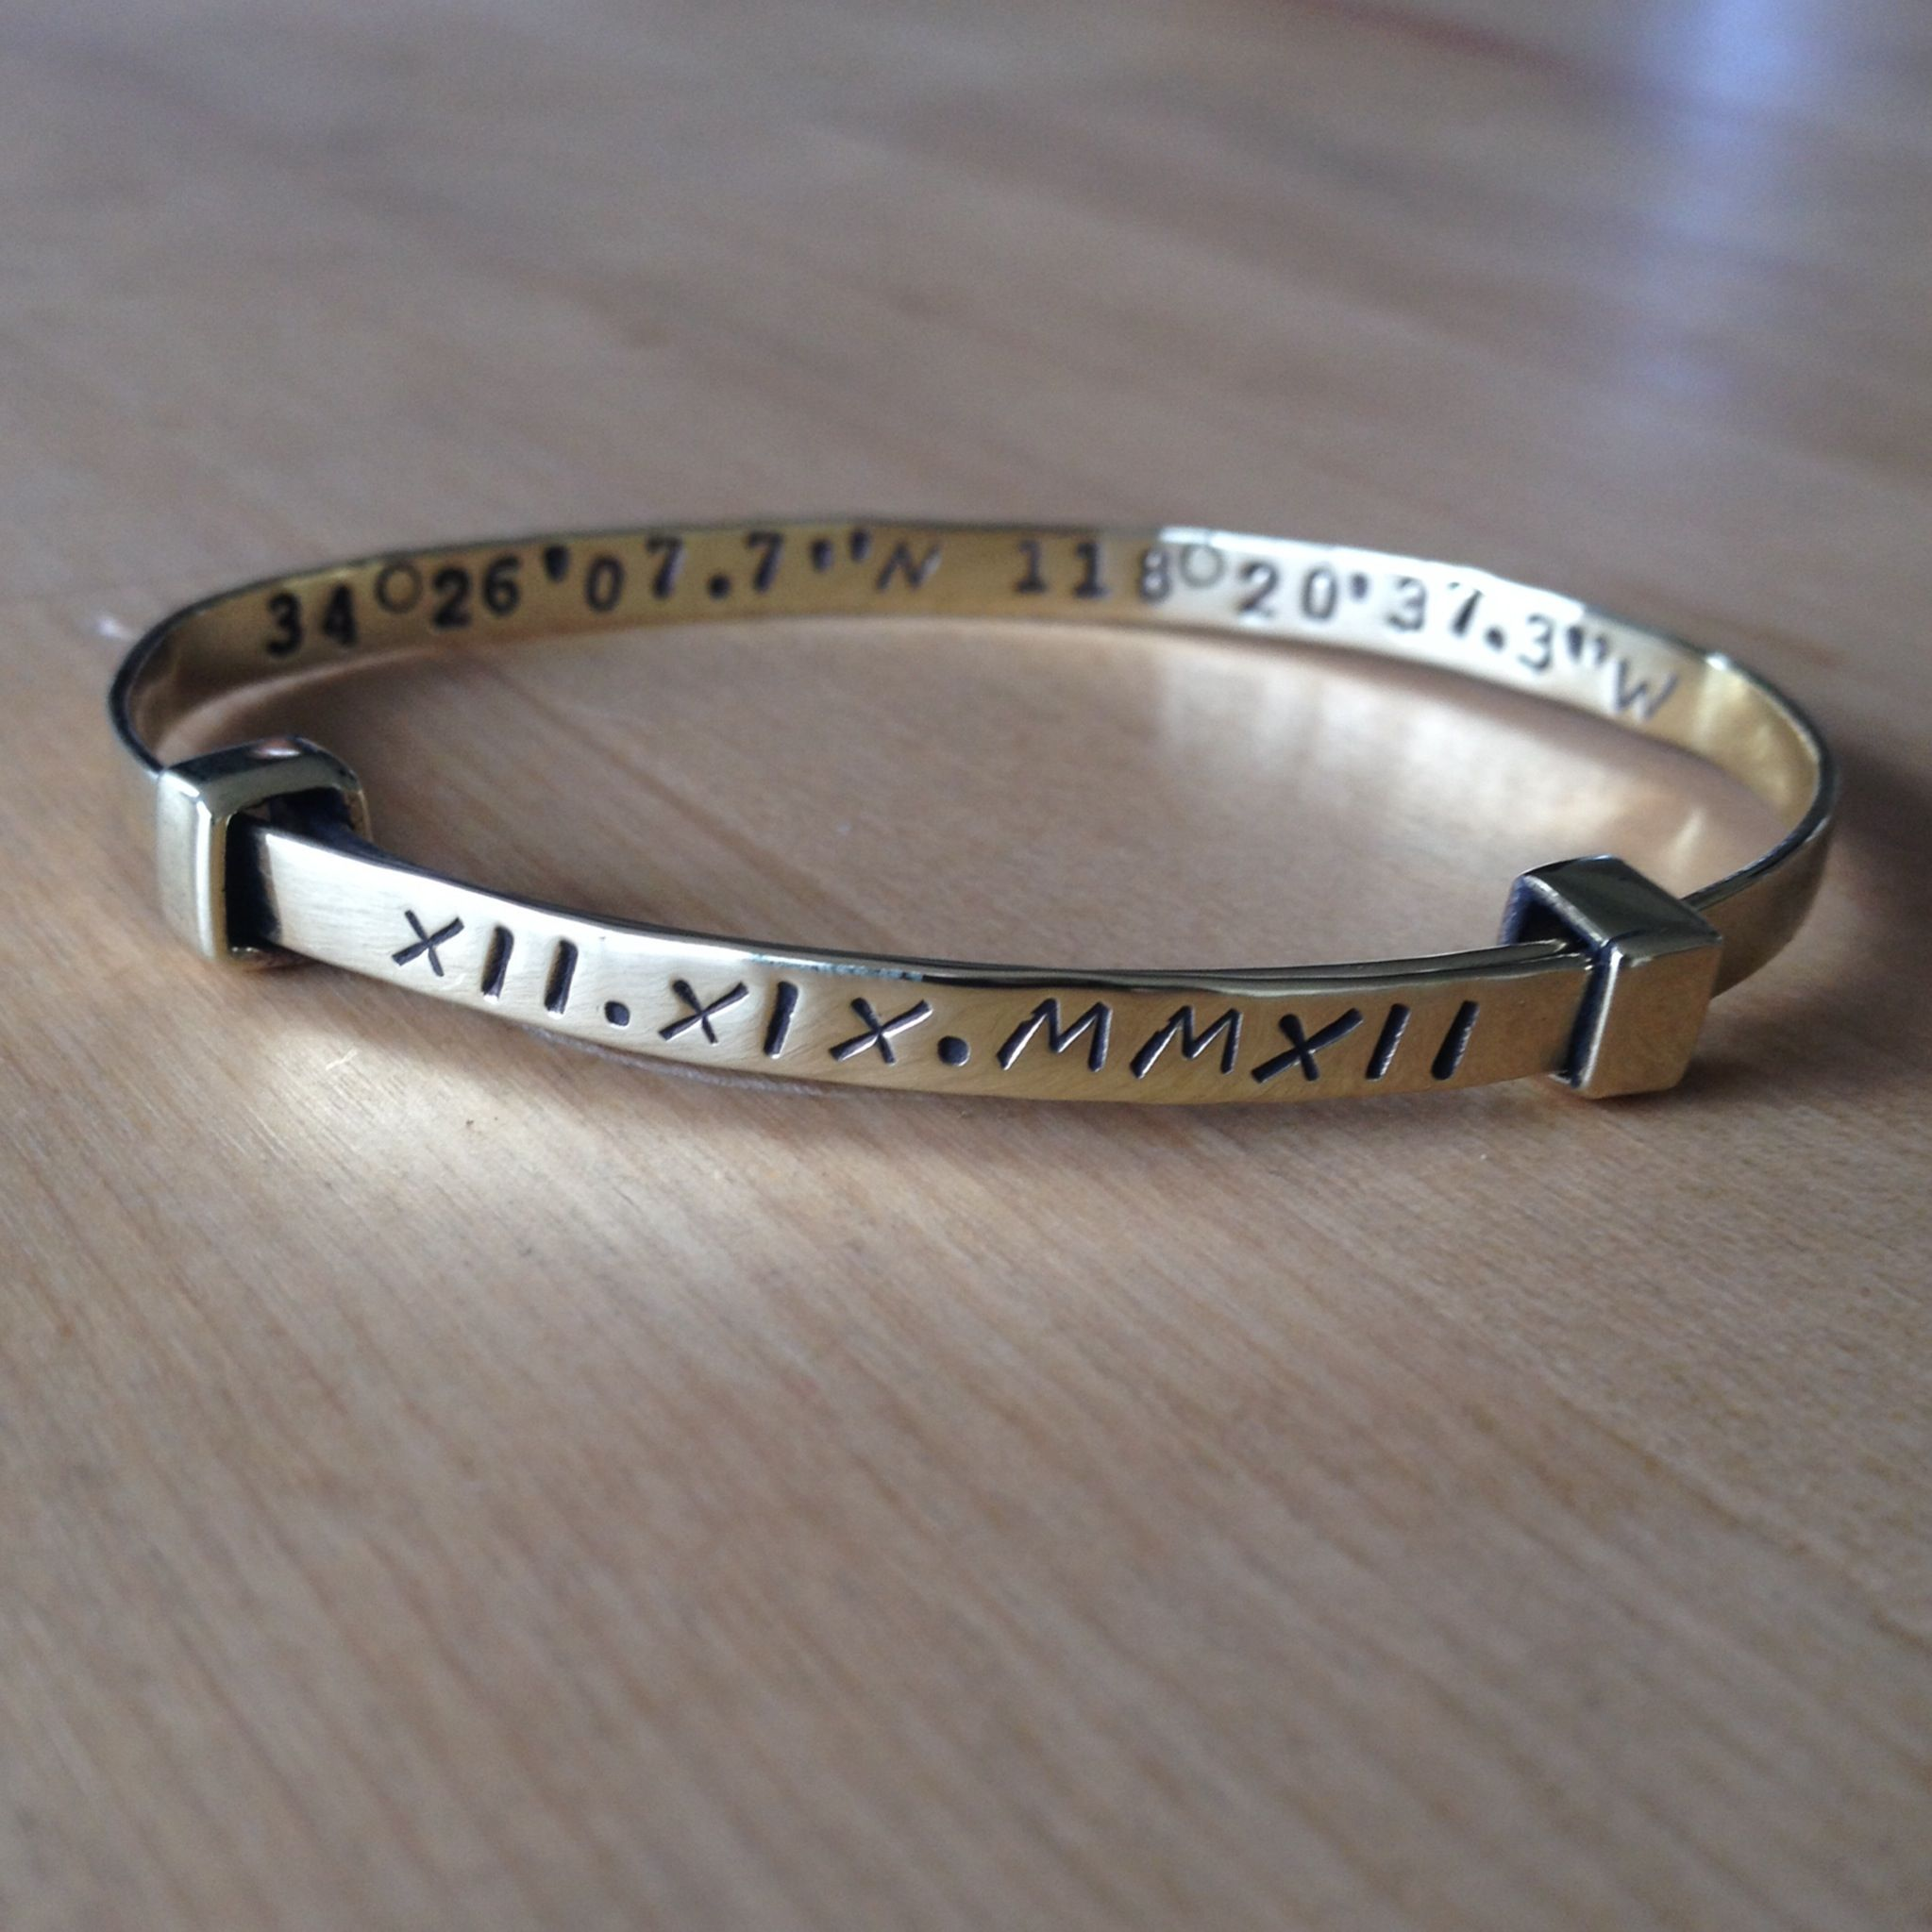 bracelet by bangle com and or in coordinates laditude nelleandlizzy with silver braclet longitude college latitude school sterling location